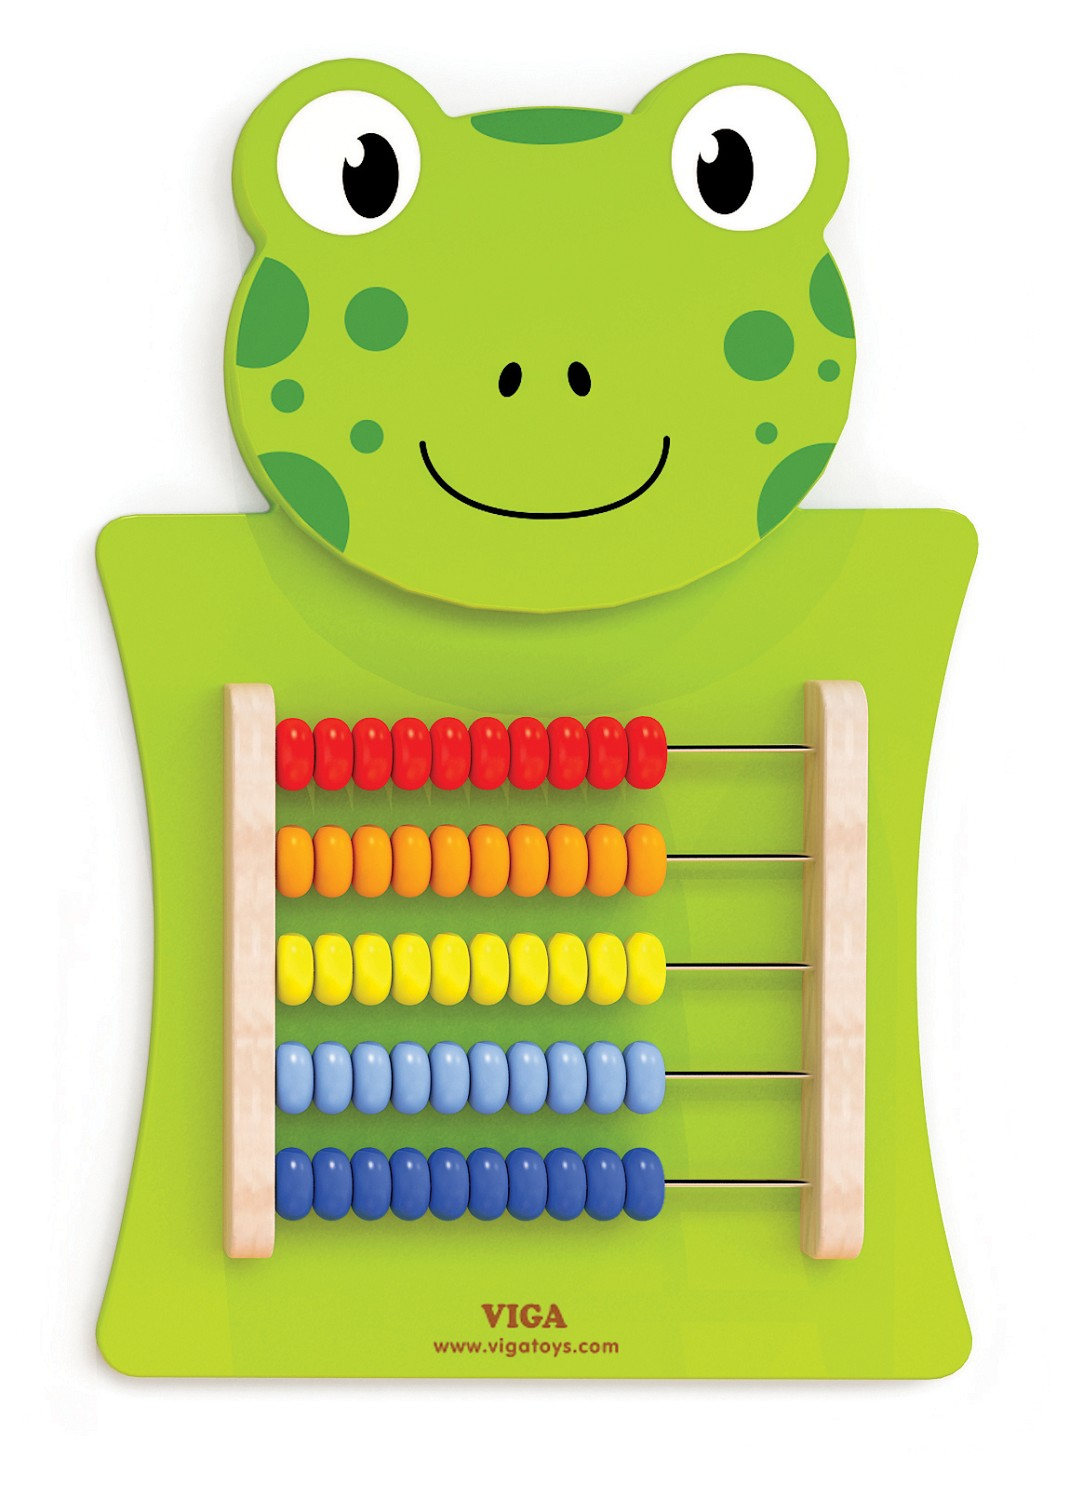 Viga Toys Wall Game Abacus Frog New Classic Toys